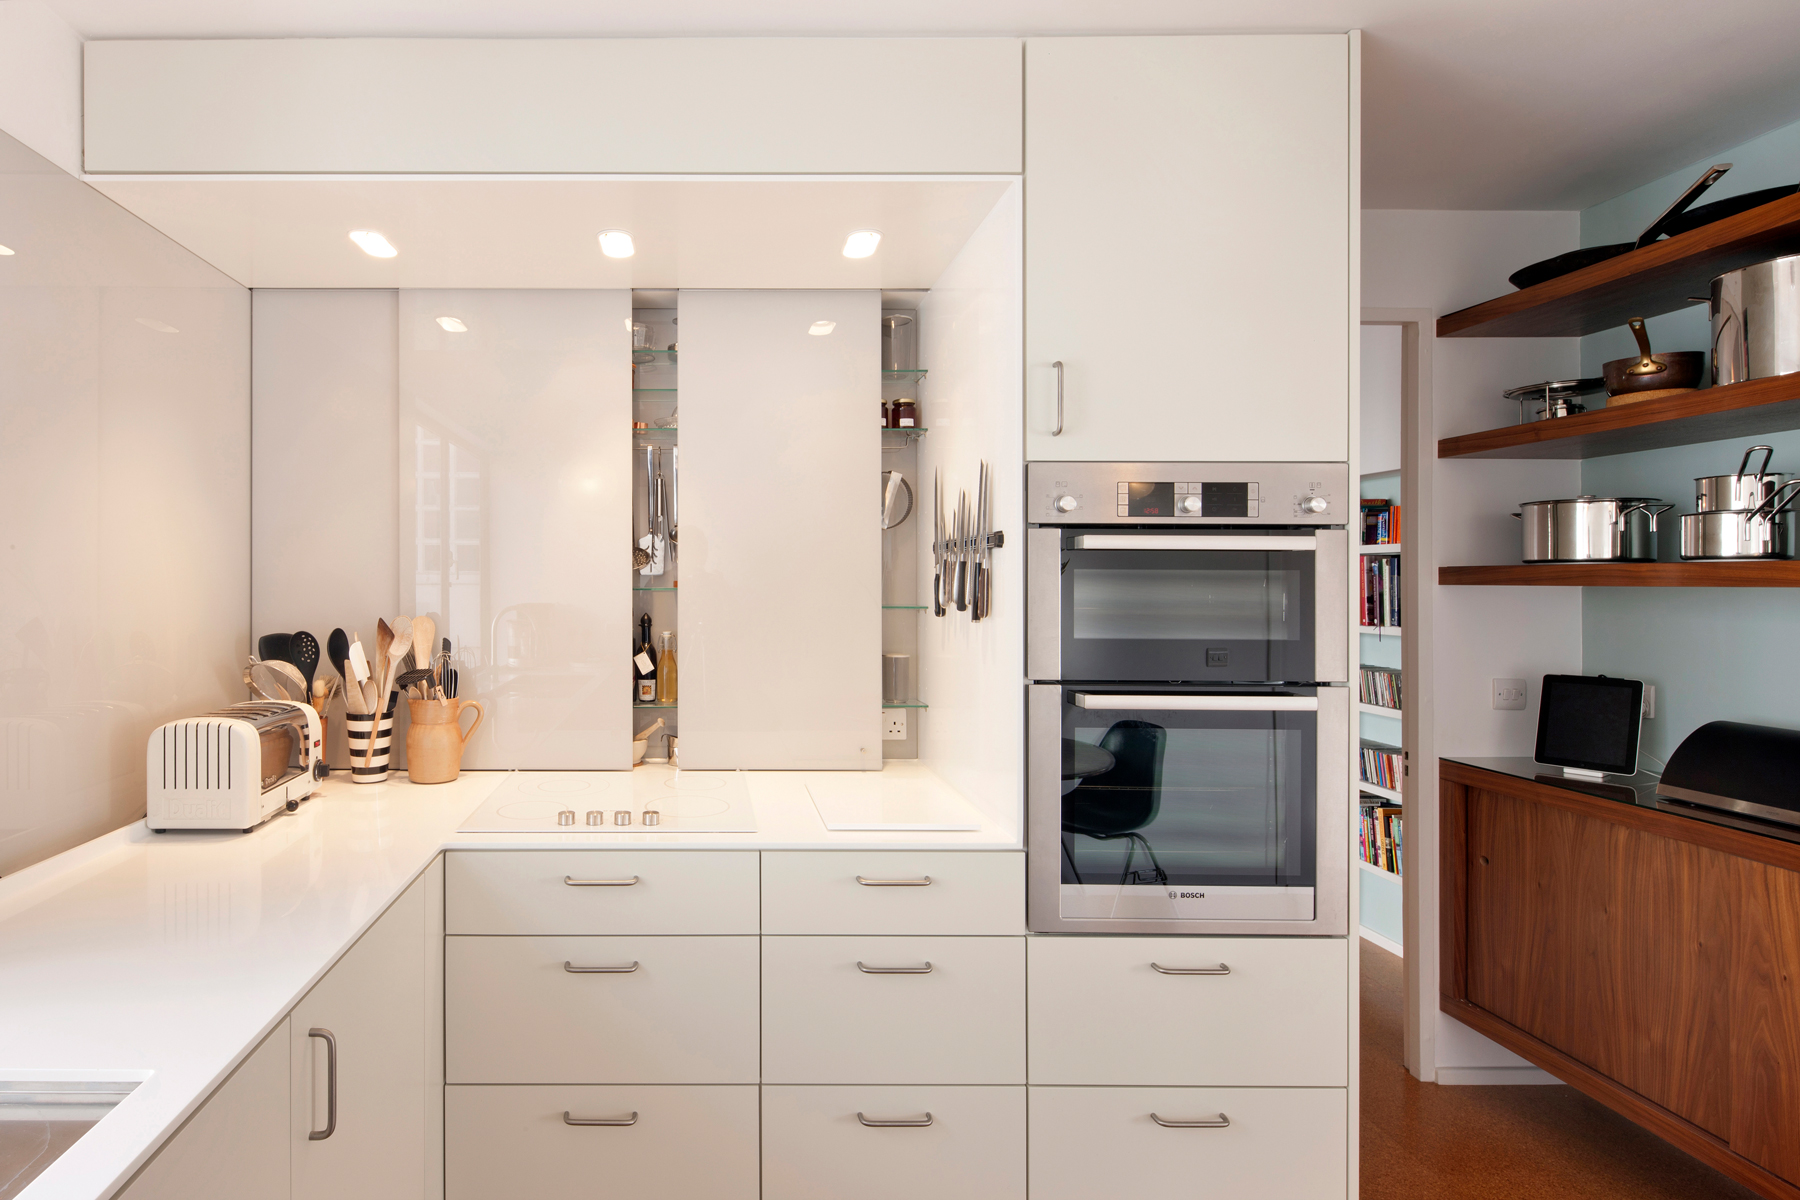 Appliance Garage Cabinets Are Back With a Sophisticated ...